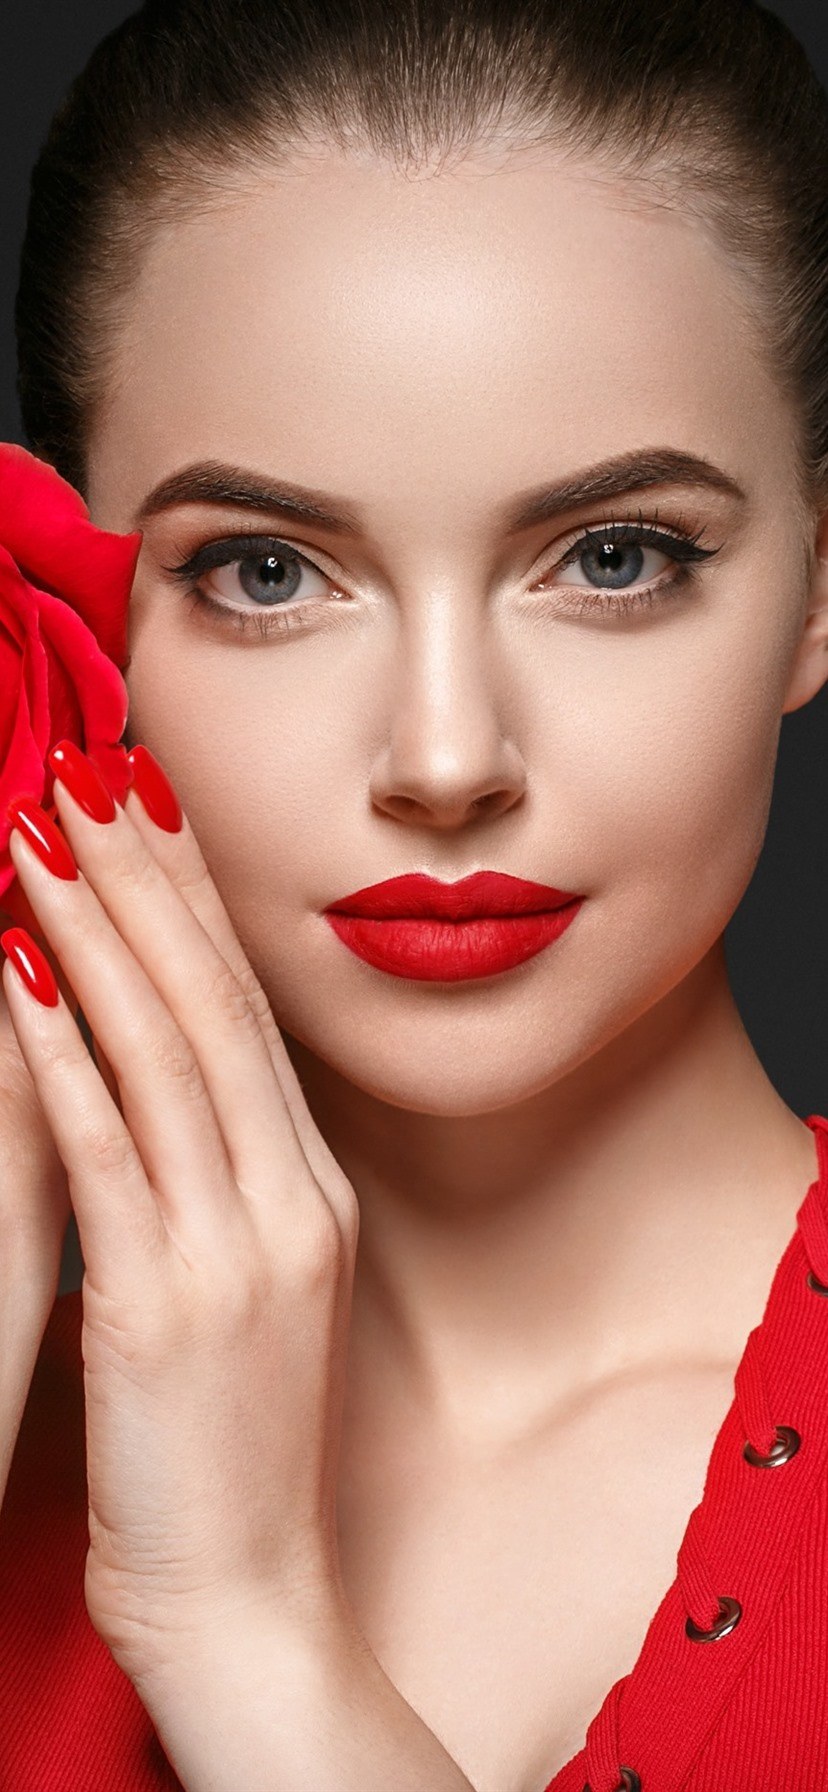 Beautiful Girl Makeup Red Rose 828x1792 Iphone 11 Xr Wallpaper Background Picture Image